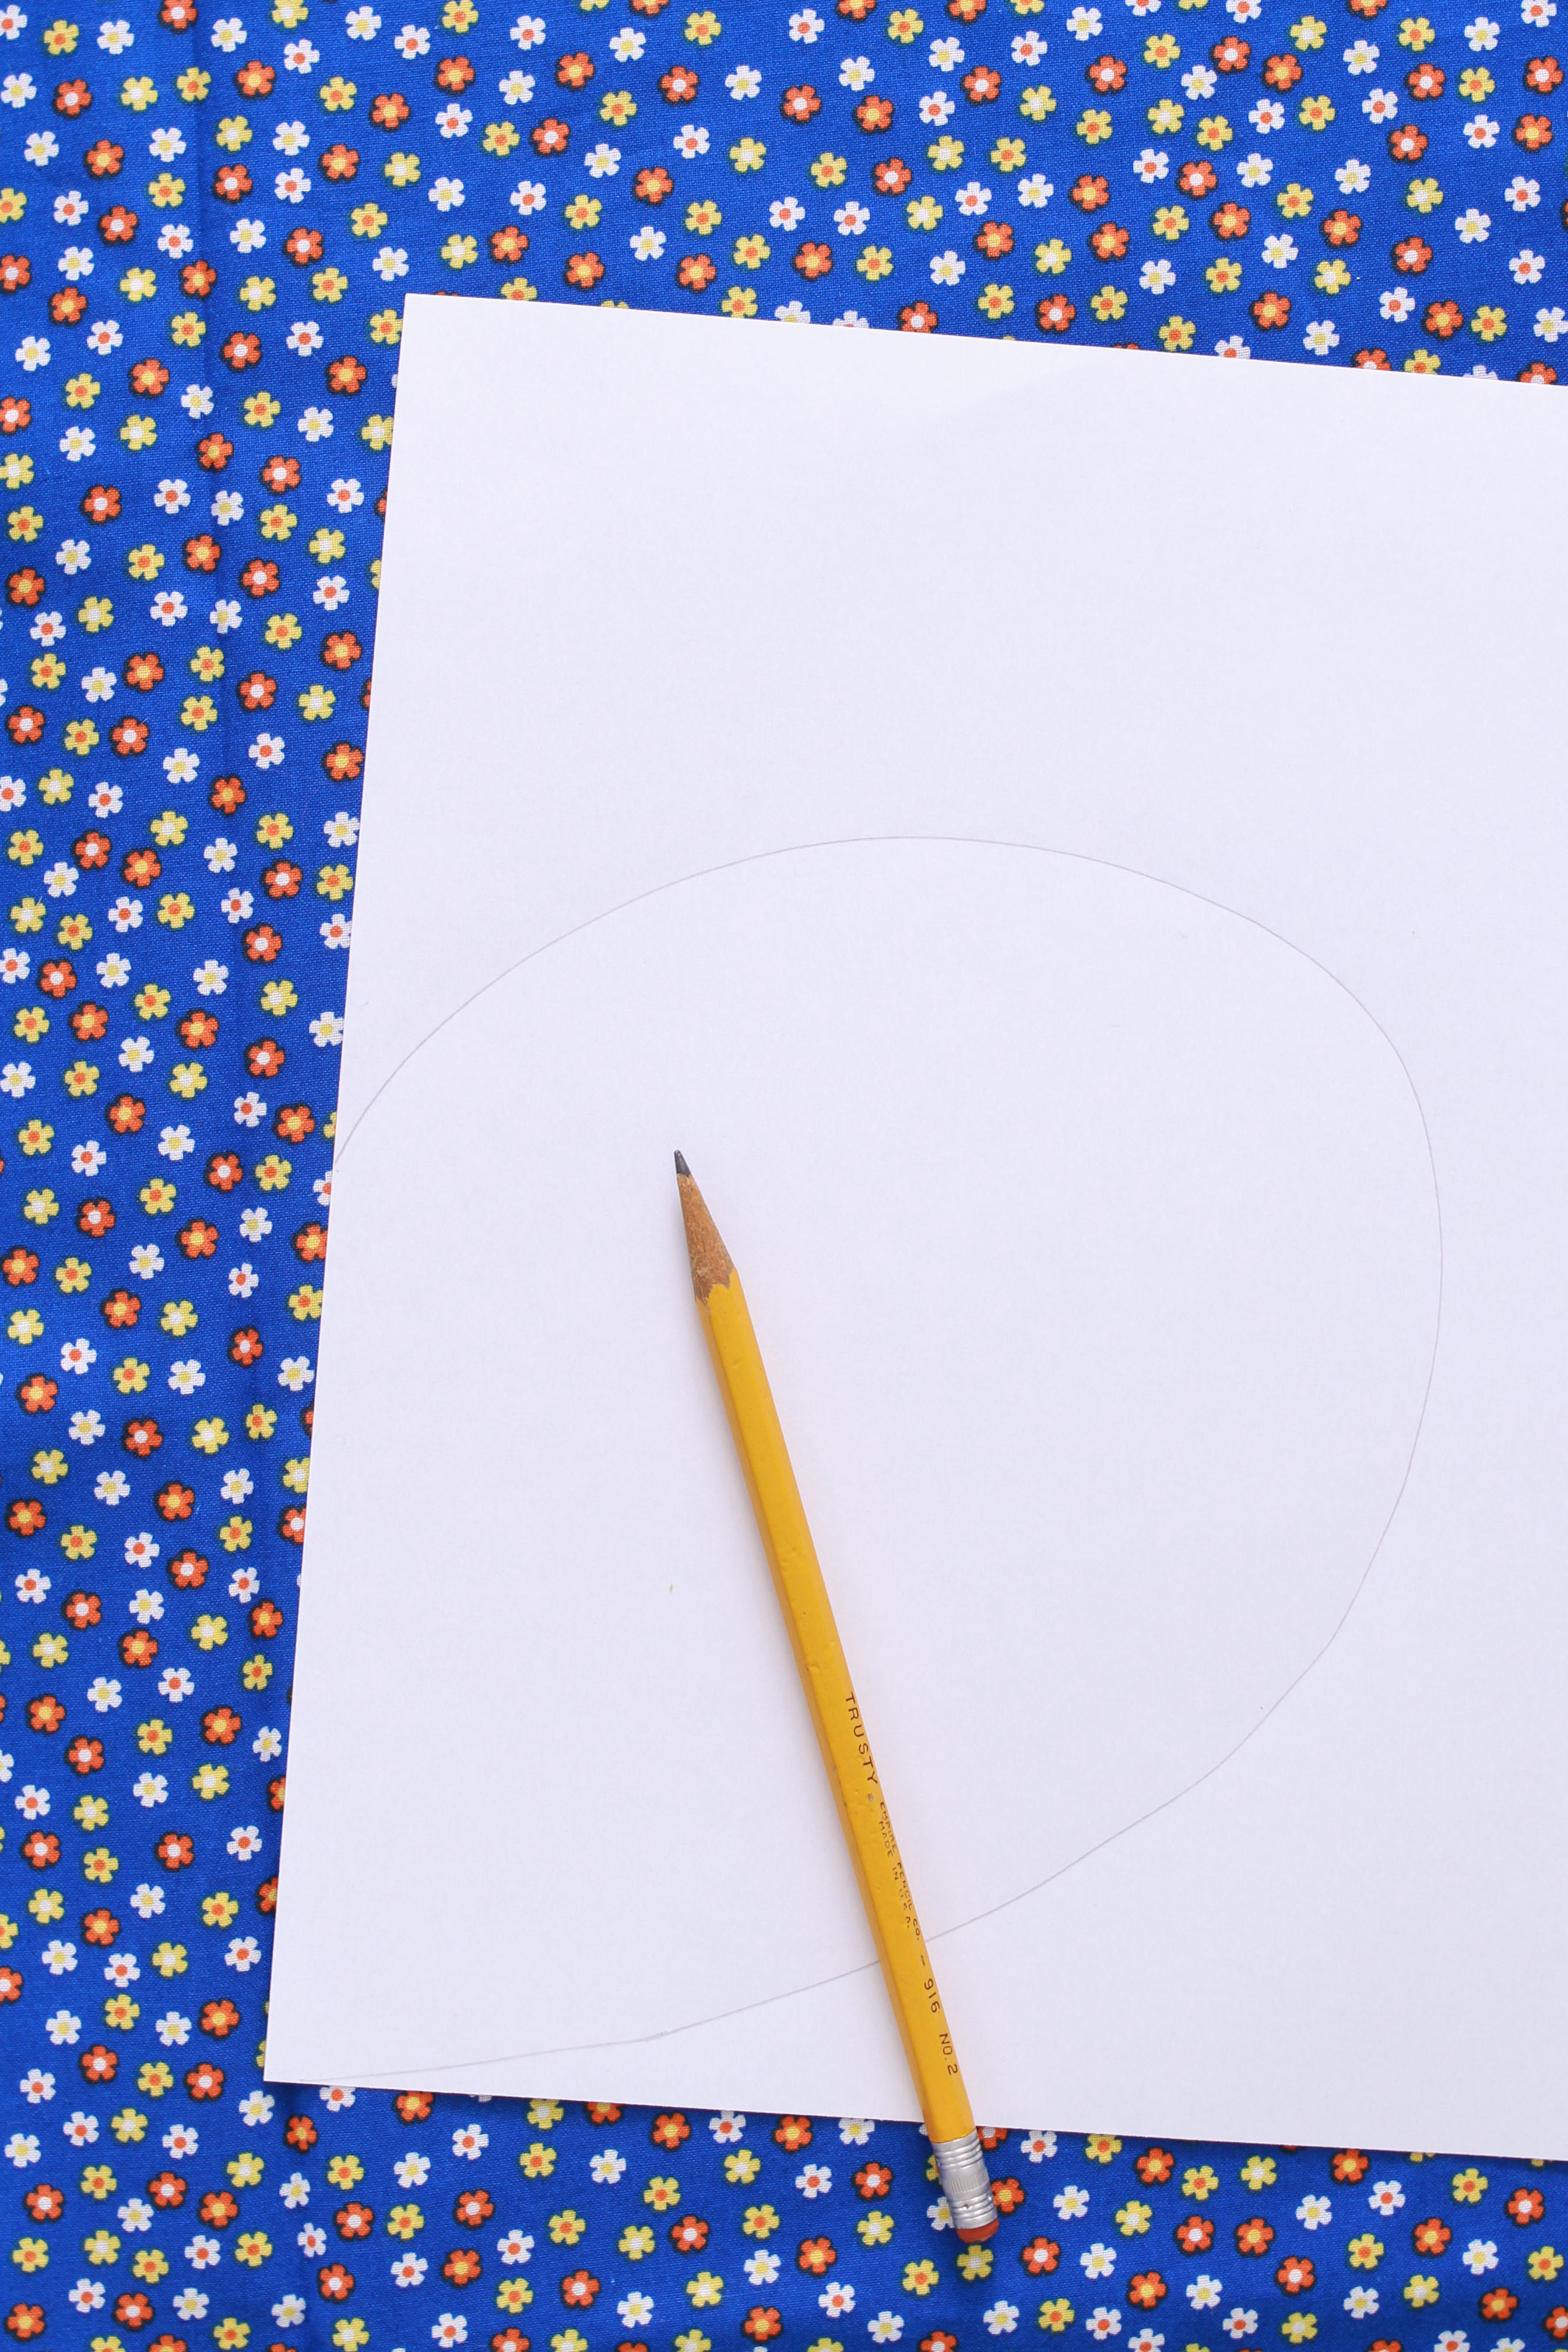 tracing a pocket to sew